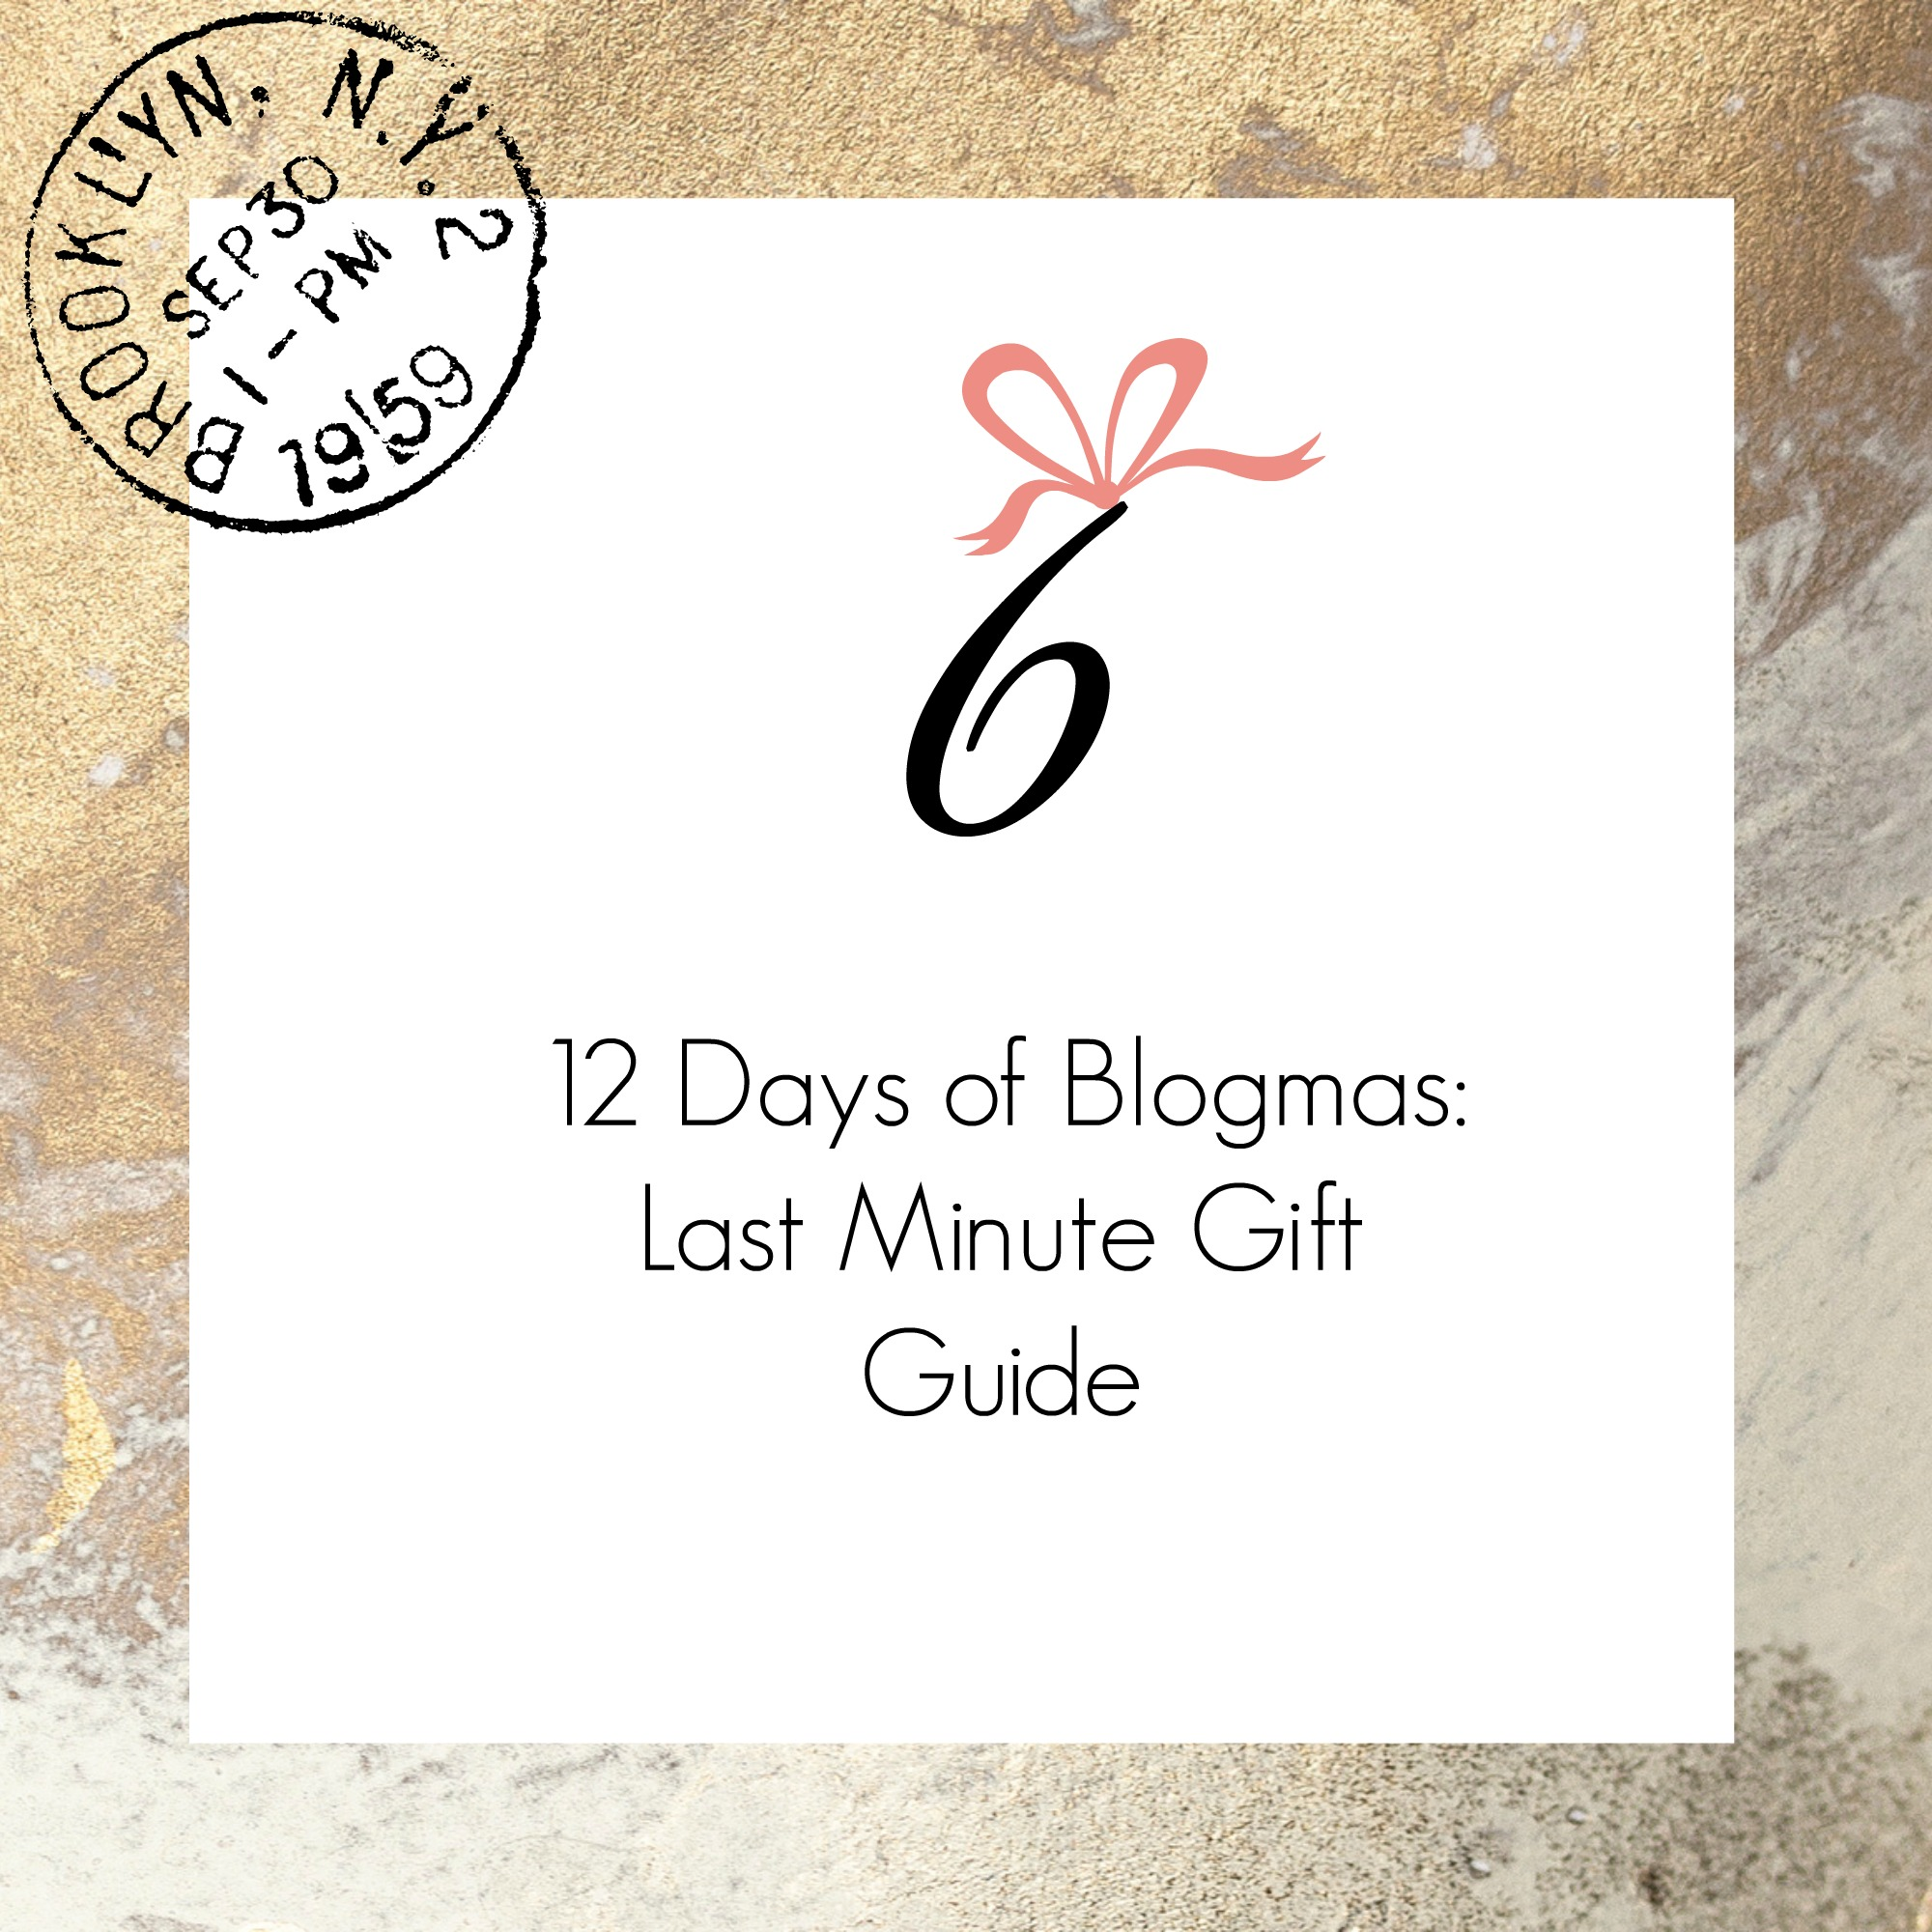 Calgary based blog by Drea Marie shares her last minute gift guide & stocking stuffers. It's the LAST WEEKEND before Xmas so let's do this!